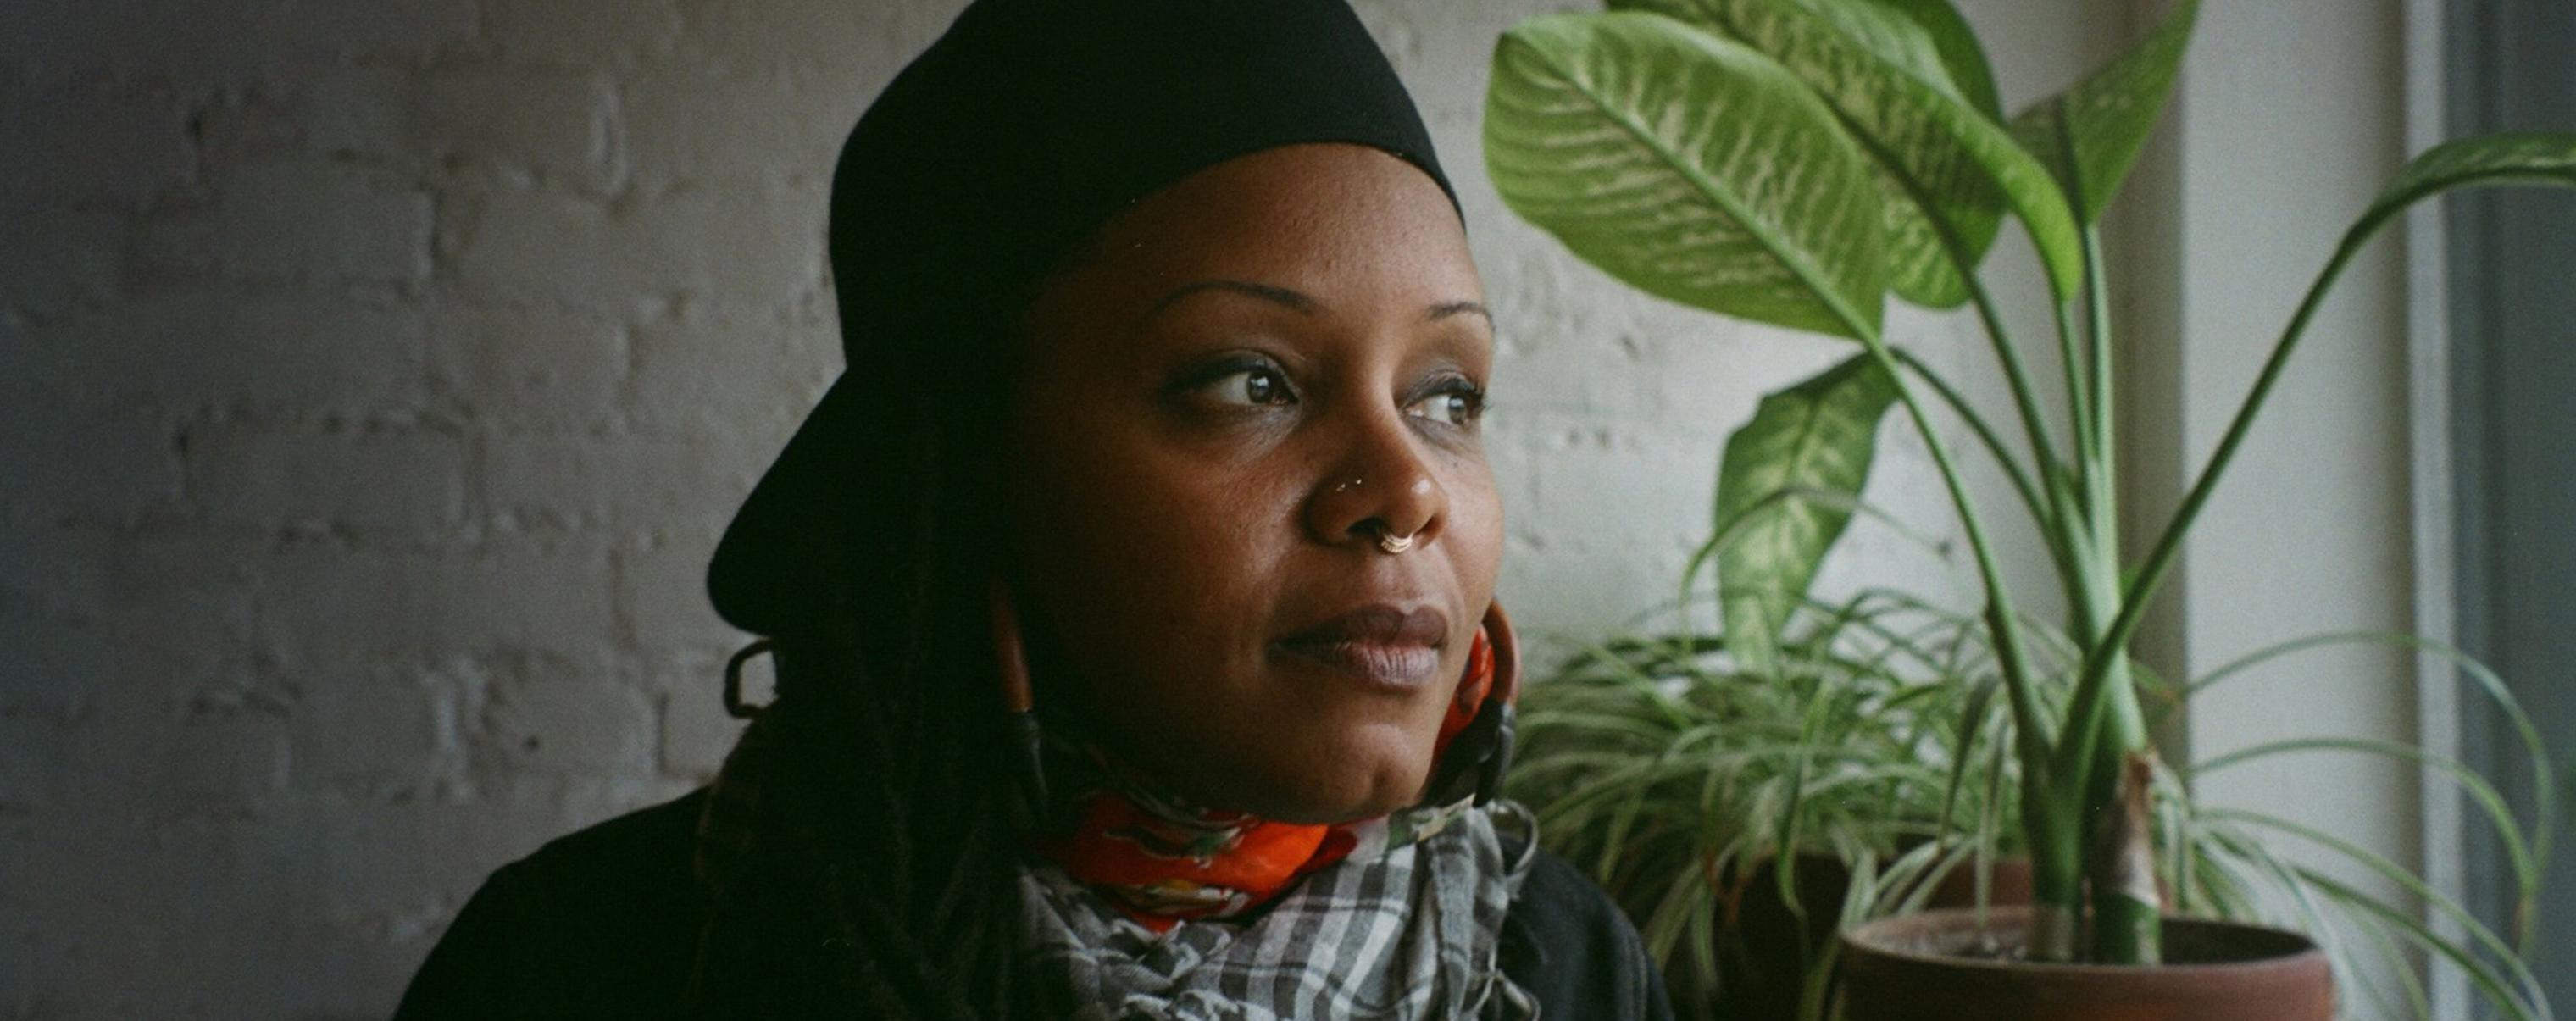 Matana Roberts Appointed Distinguished Guest Composer at the Chicago Center for Contemporary Composition